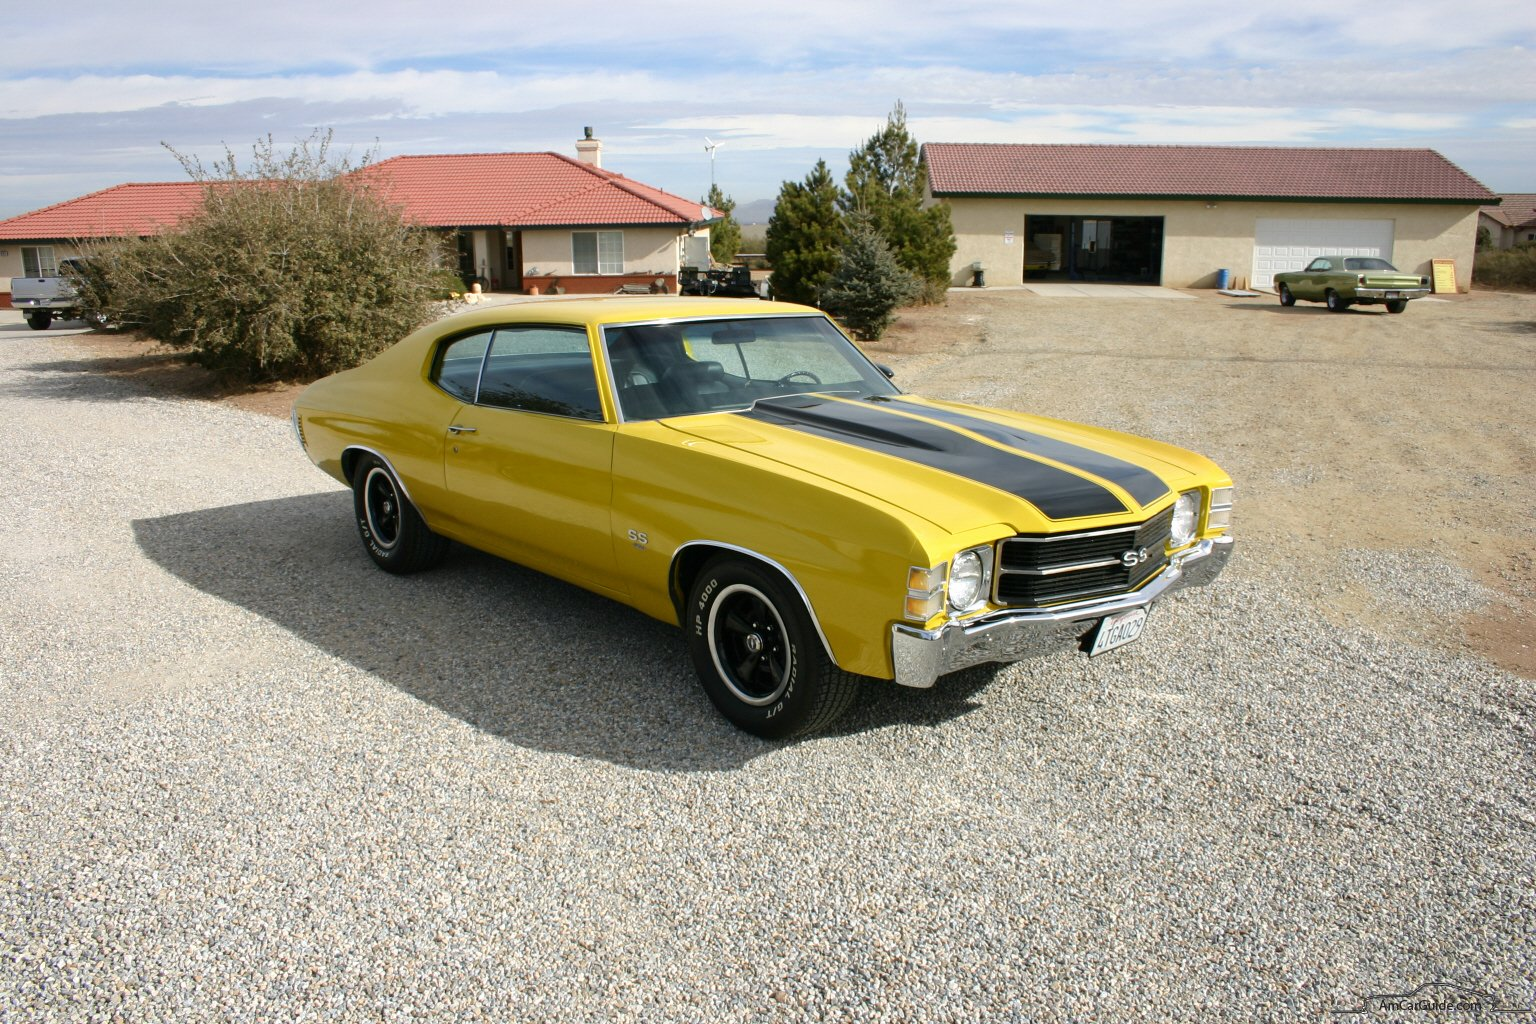 All Chevy 1971 chevrolet chevelle ss : Chevrolet Chevelle: 1964-1972, 1st generation | AmcarGuide.com ...